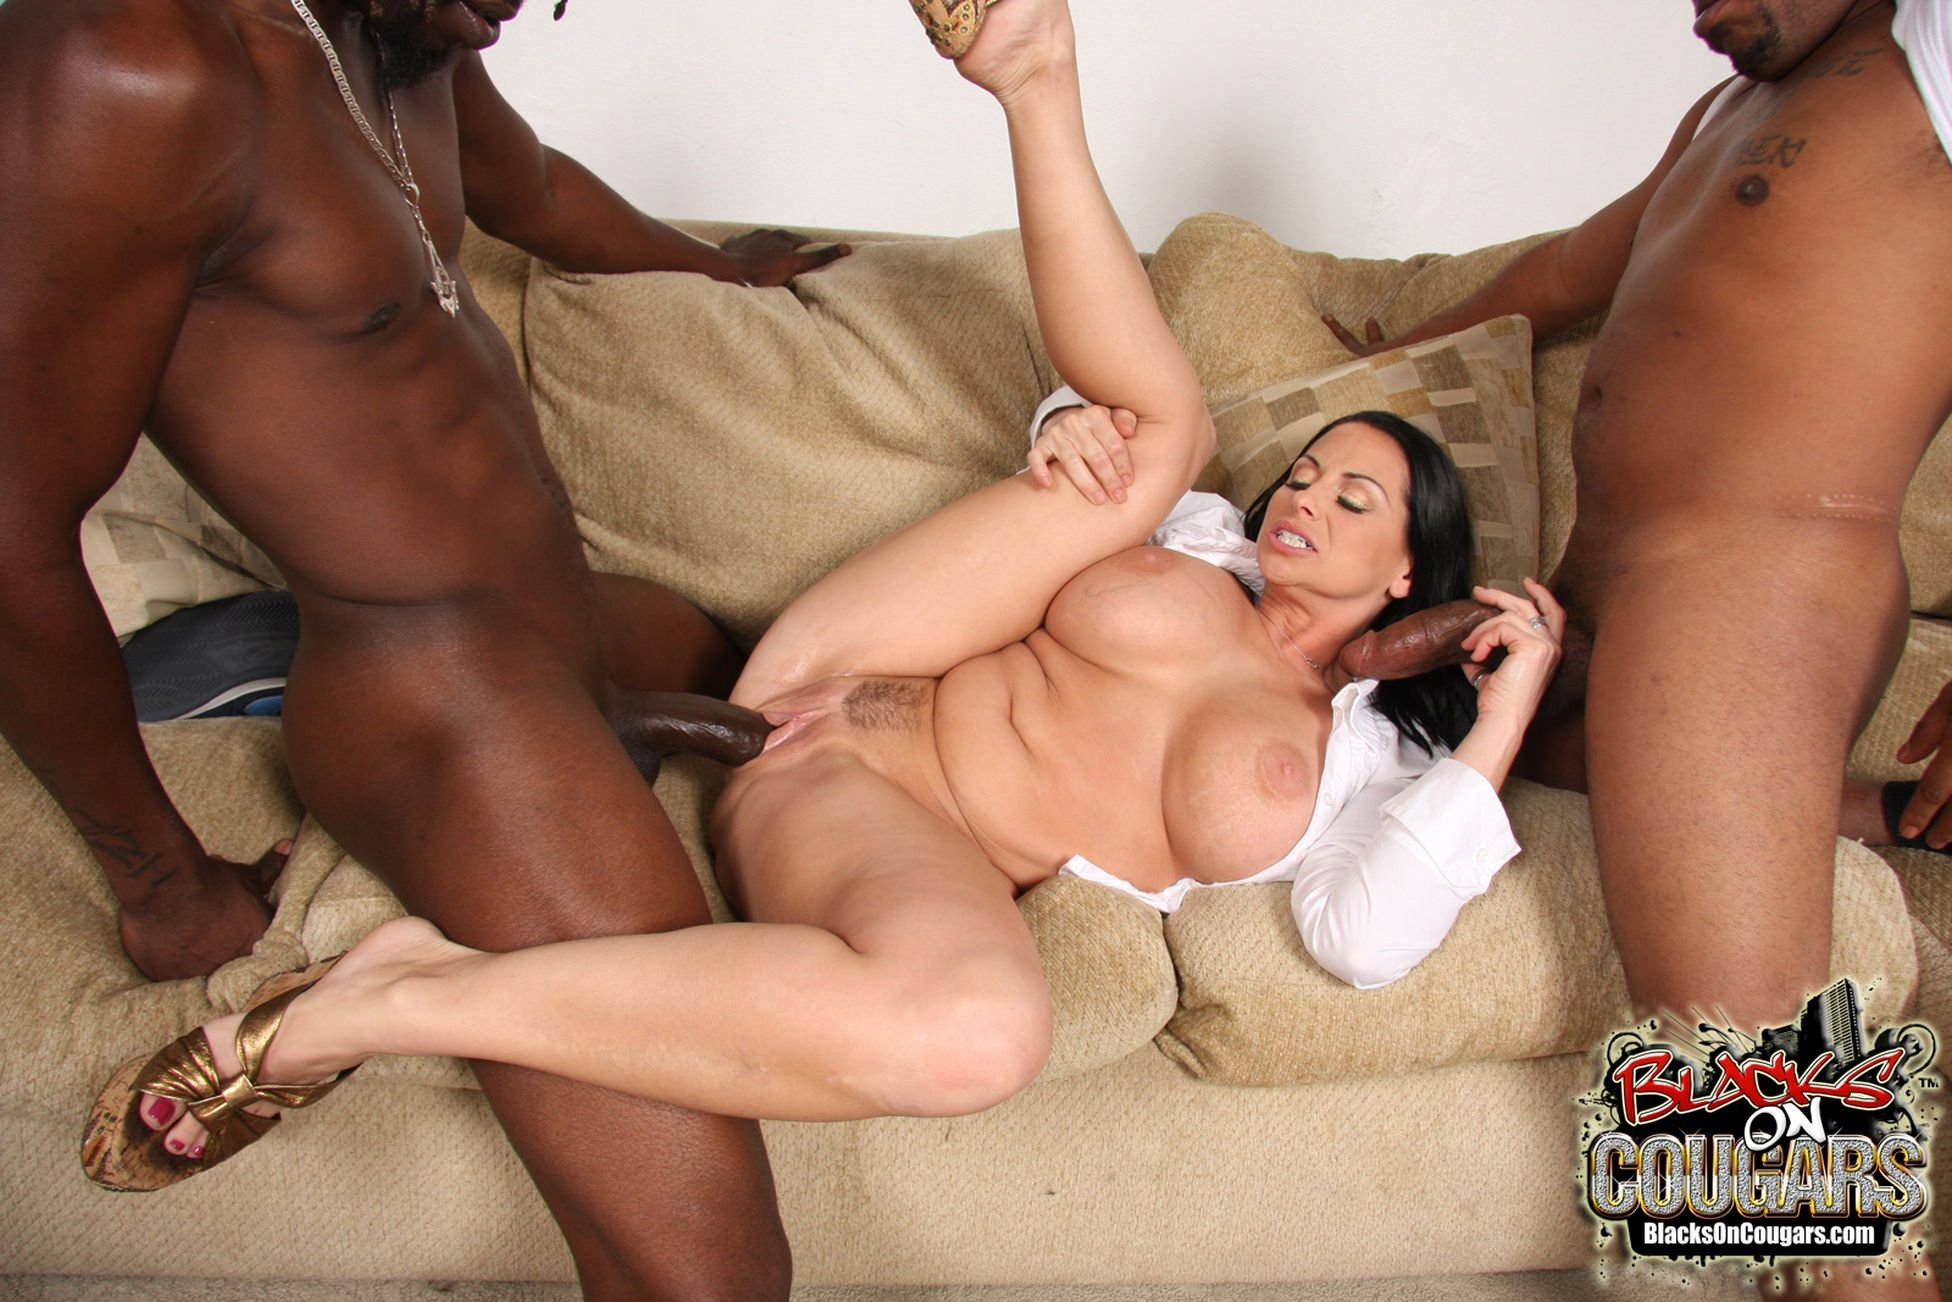 Adriana Malao In Petite Black Girl With A Big Ass